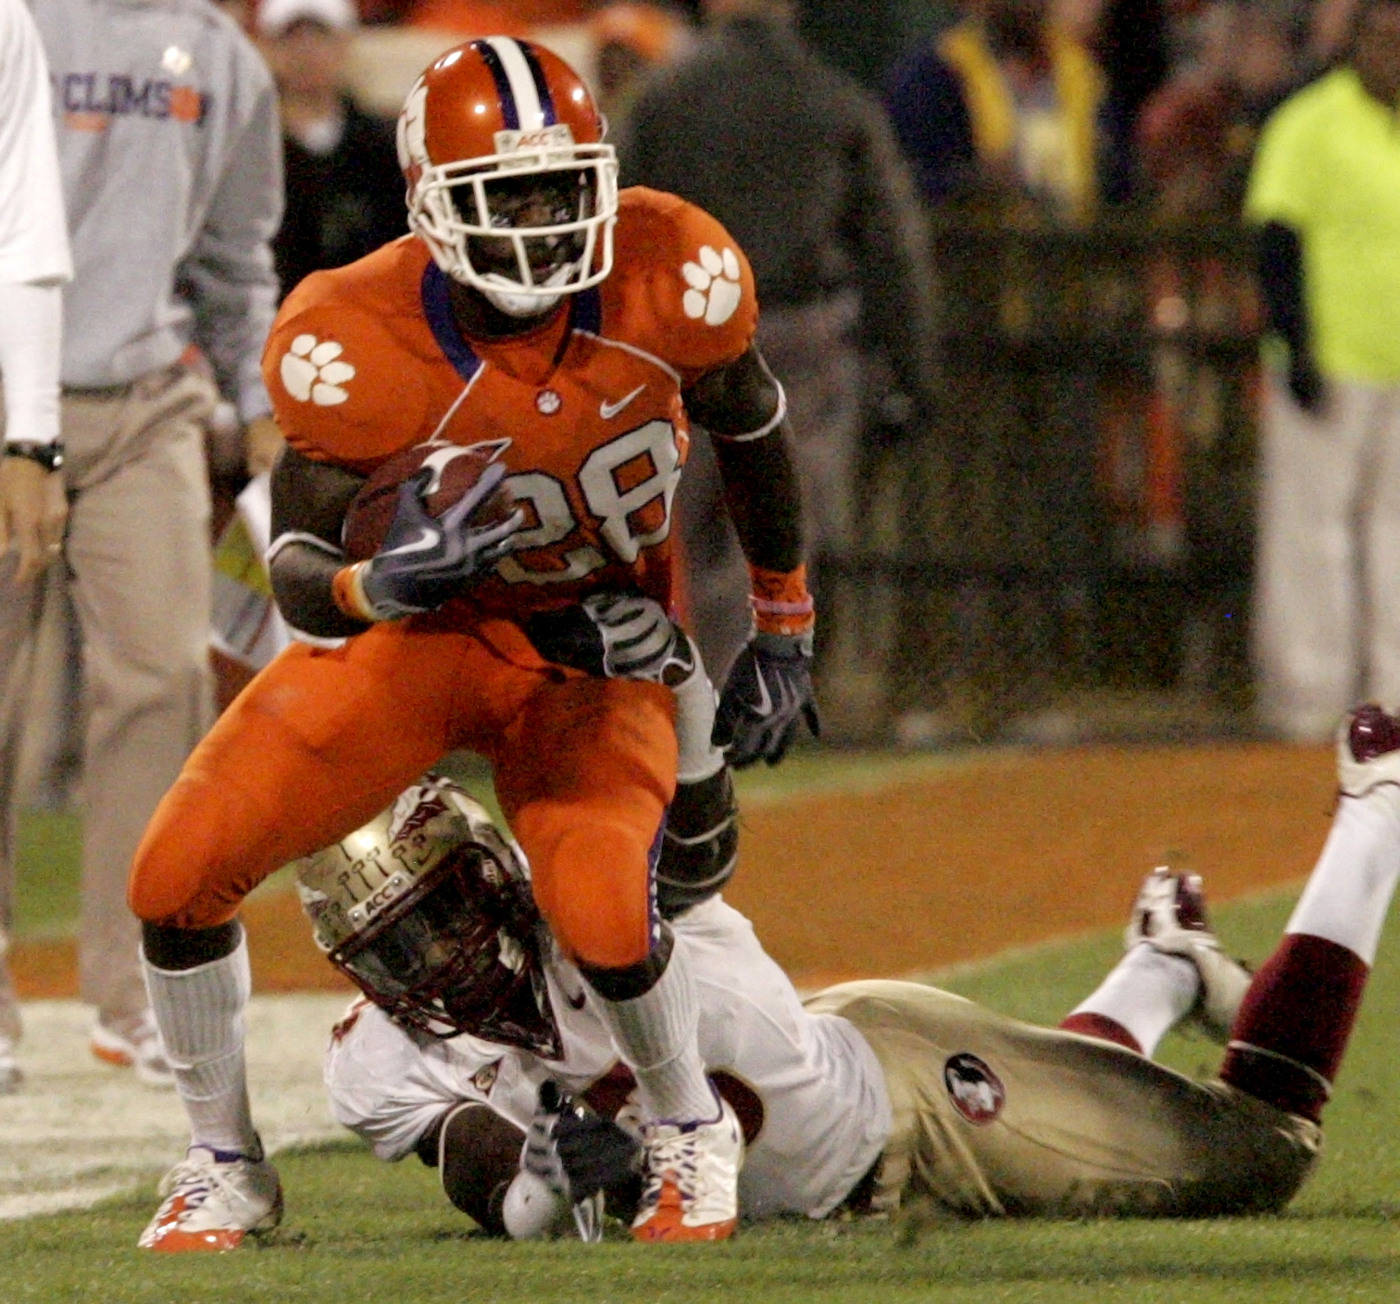 Clemson's C.J.Spiller (28) runs for a first down as Florida State's Nigel Bradham (13) defends during the first half. (AP Photo/Mary Ann Chastain)